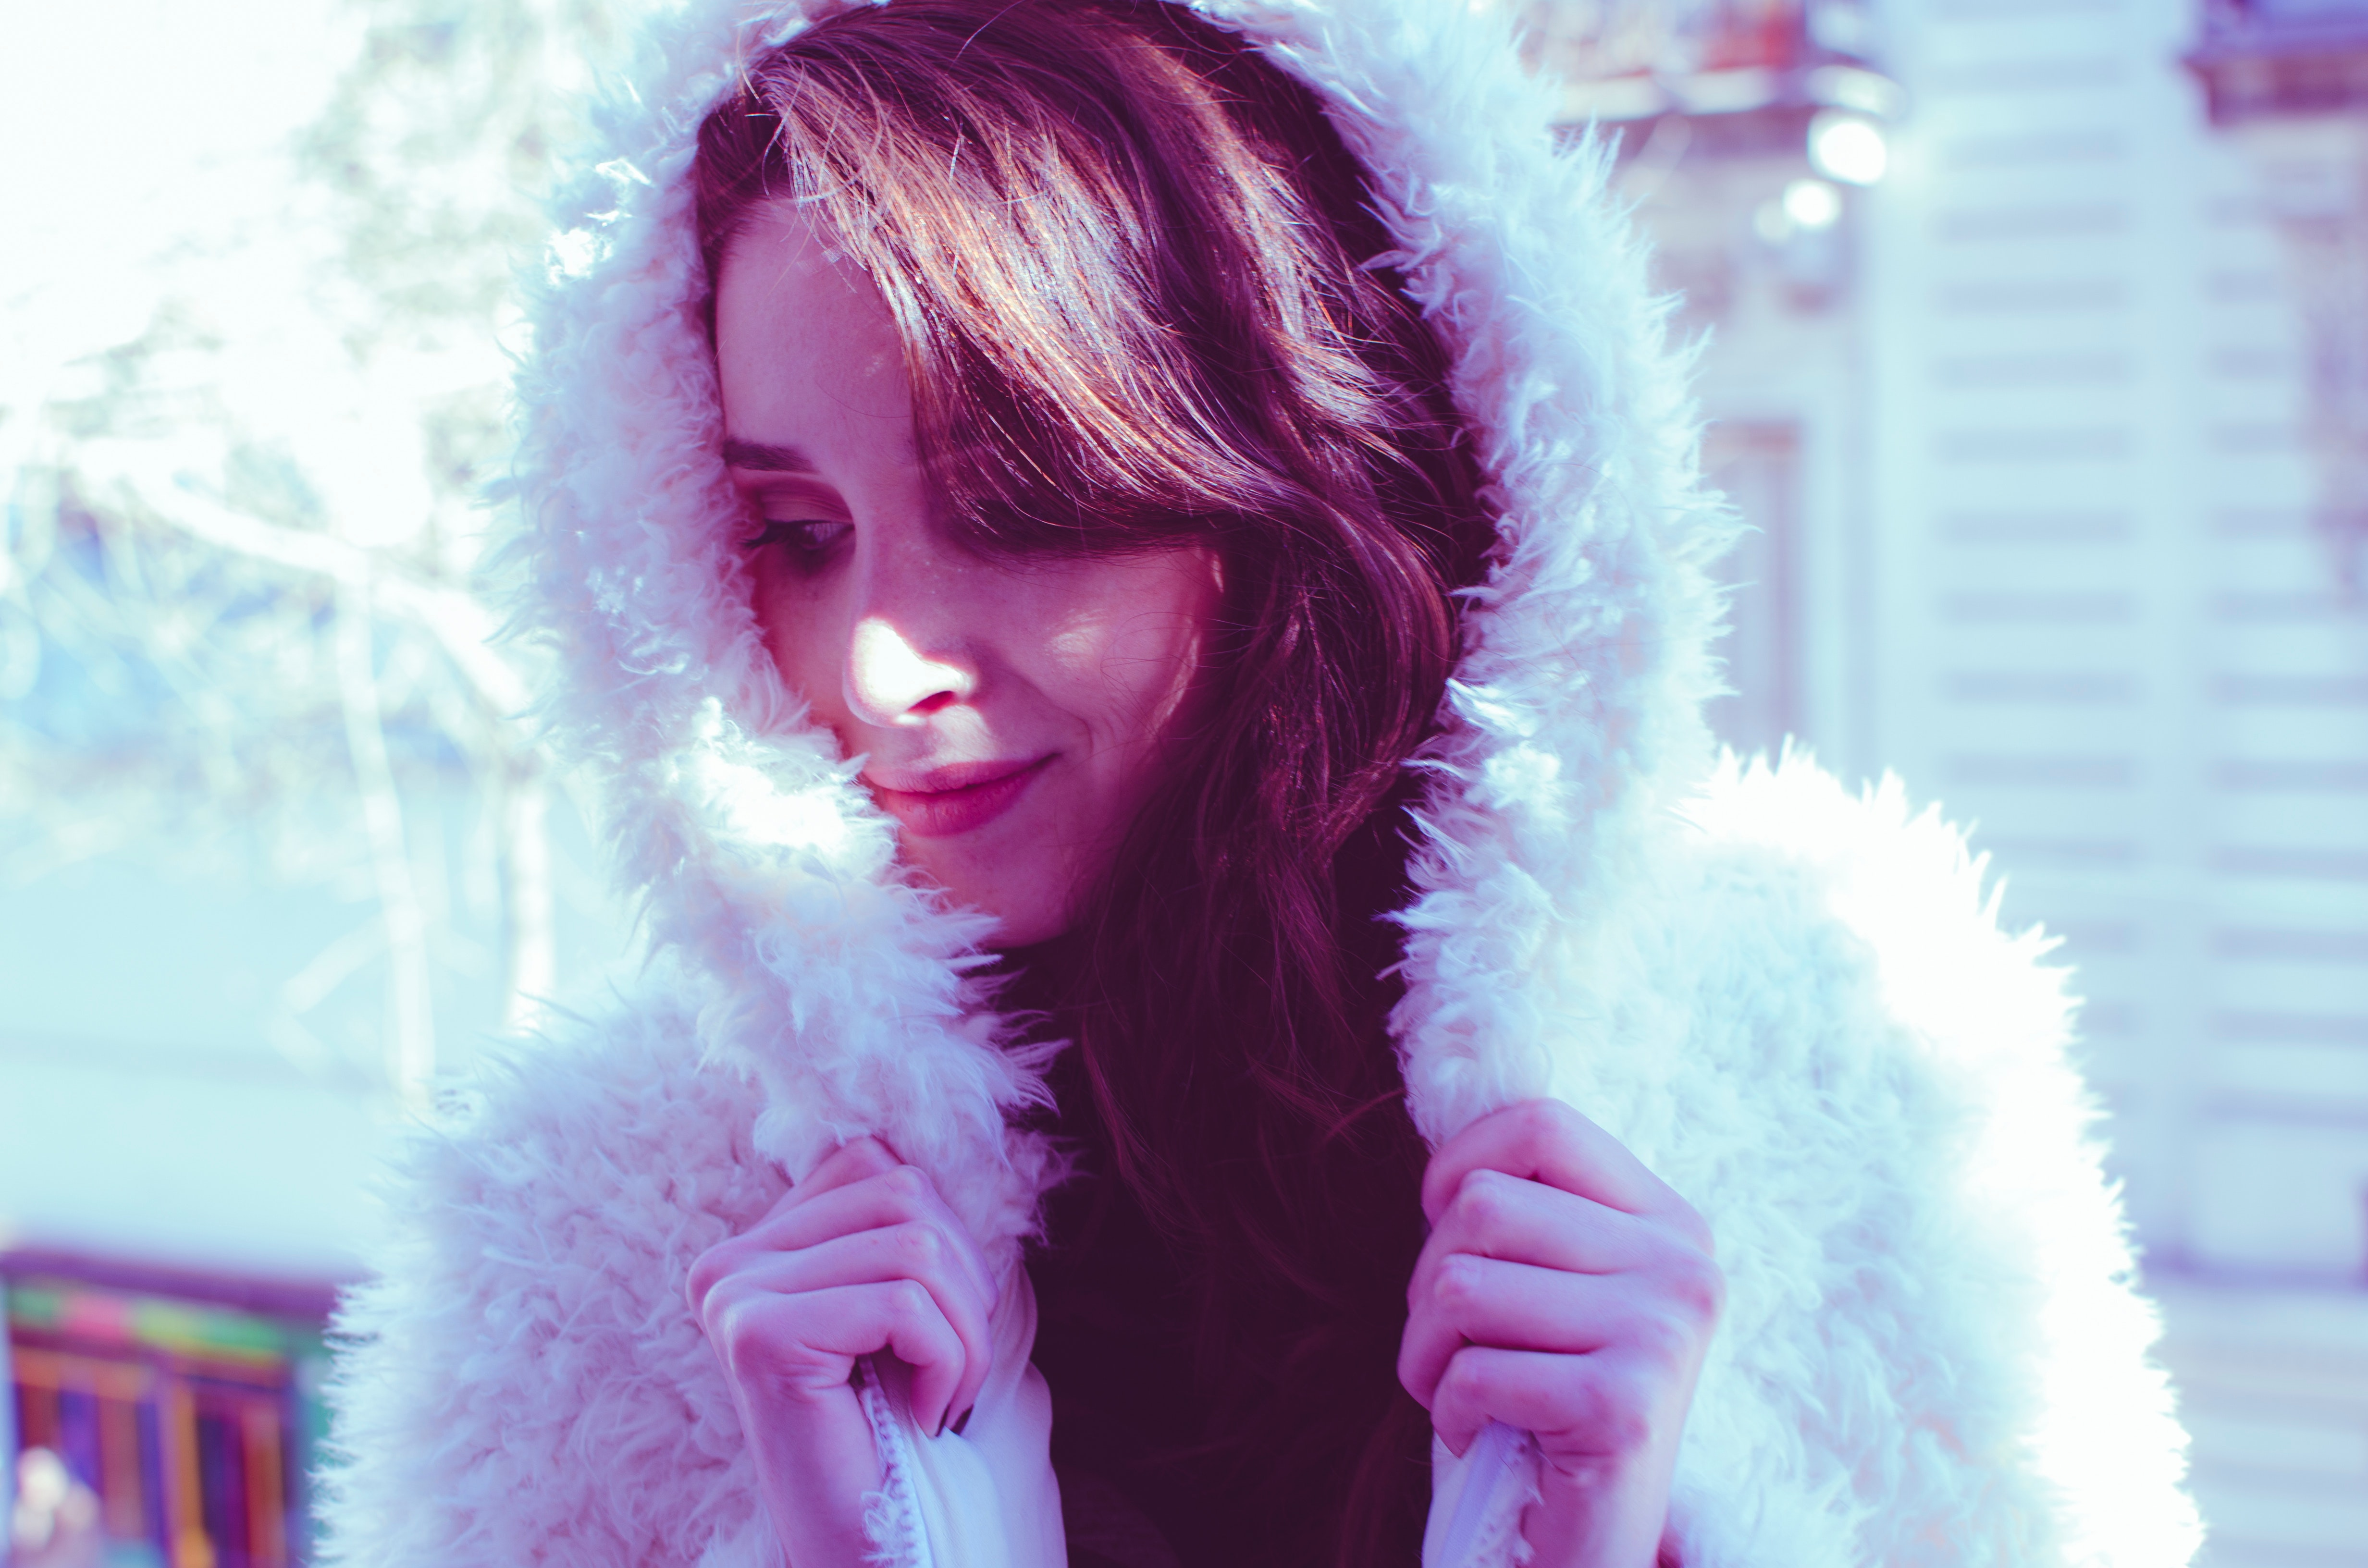 Photography of a Woman in White Fur Coat, Hands, Young, Woman, Winter, HQ Photo